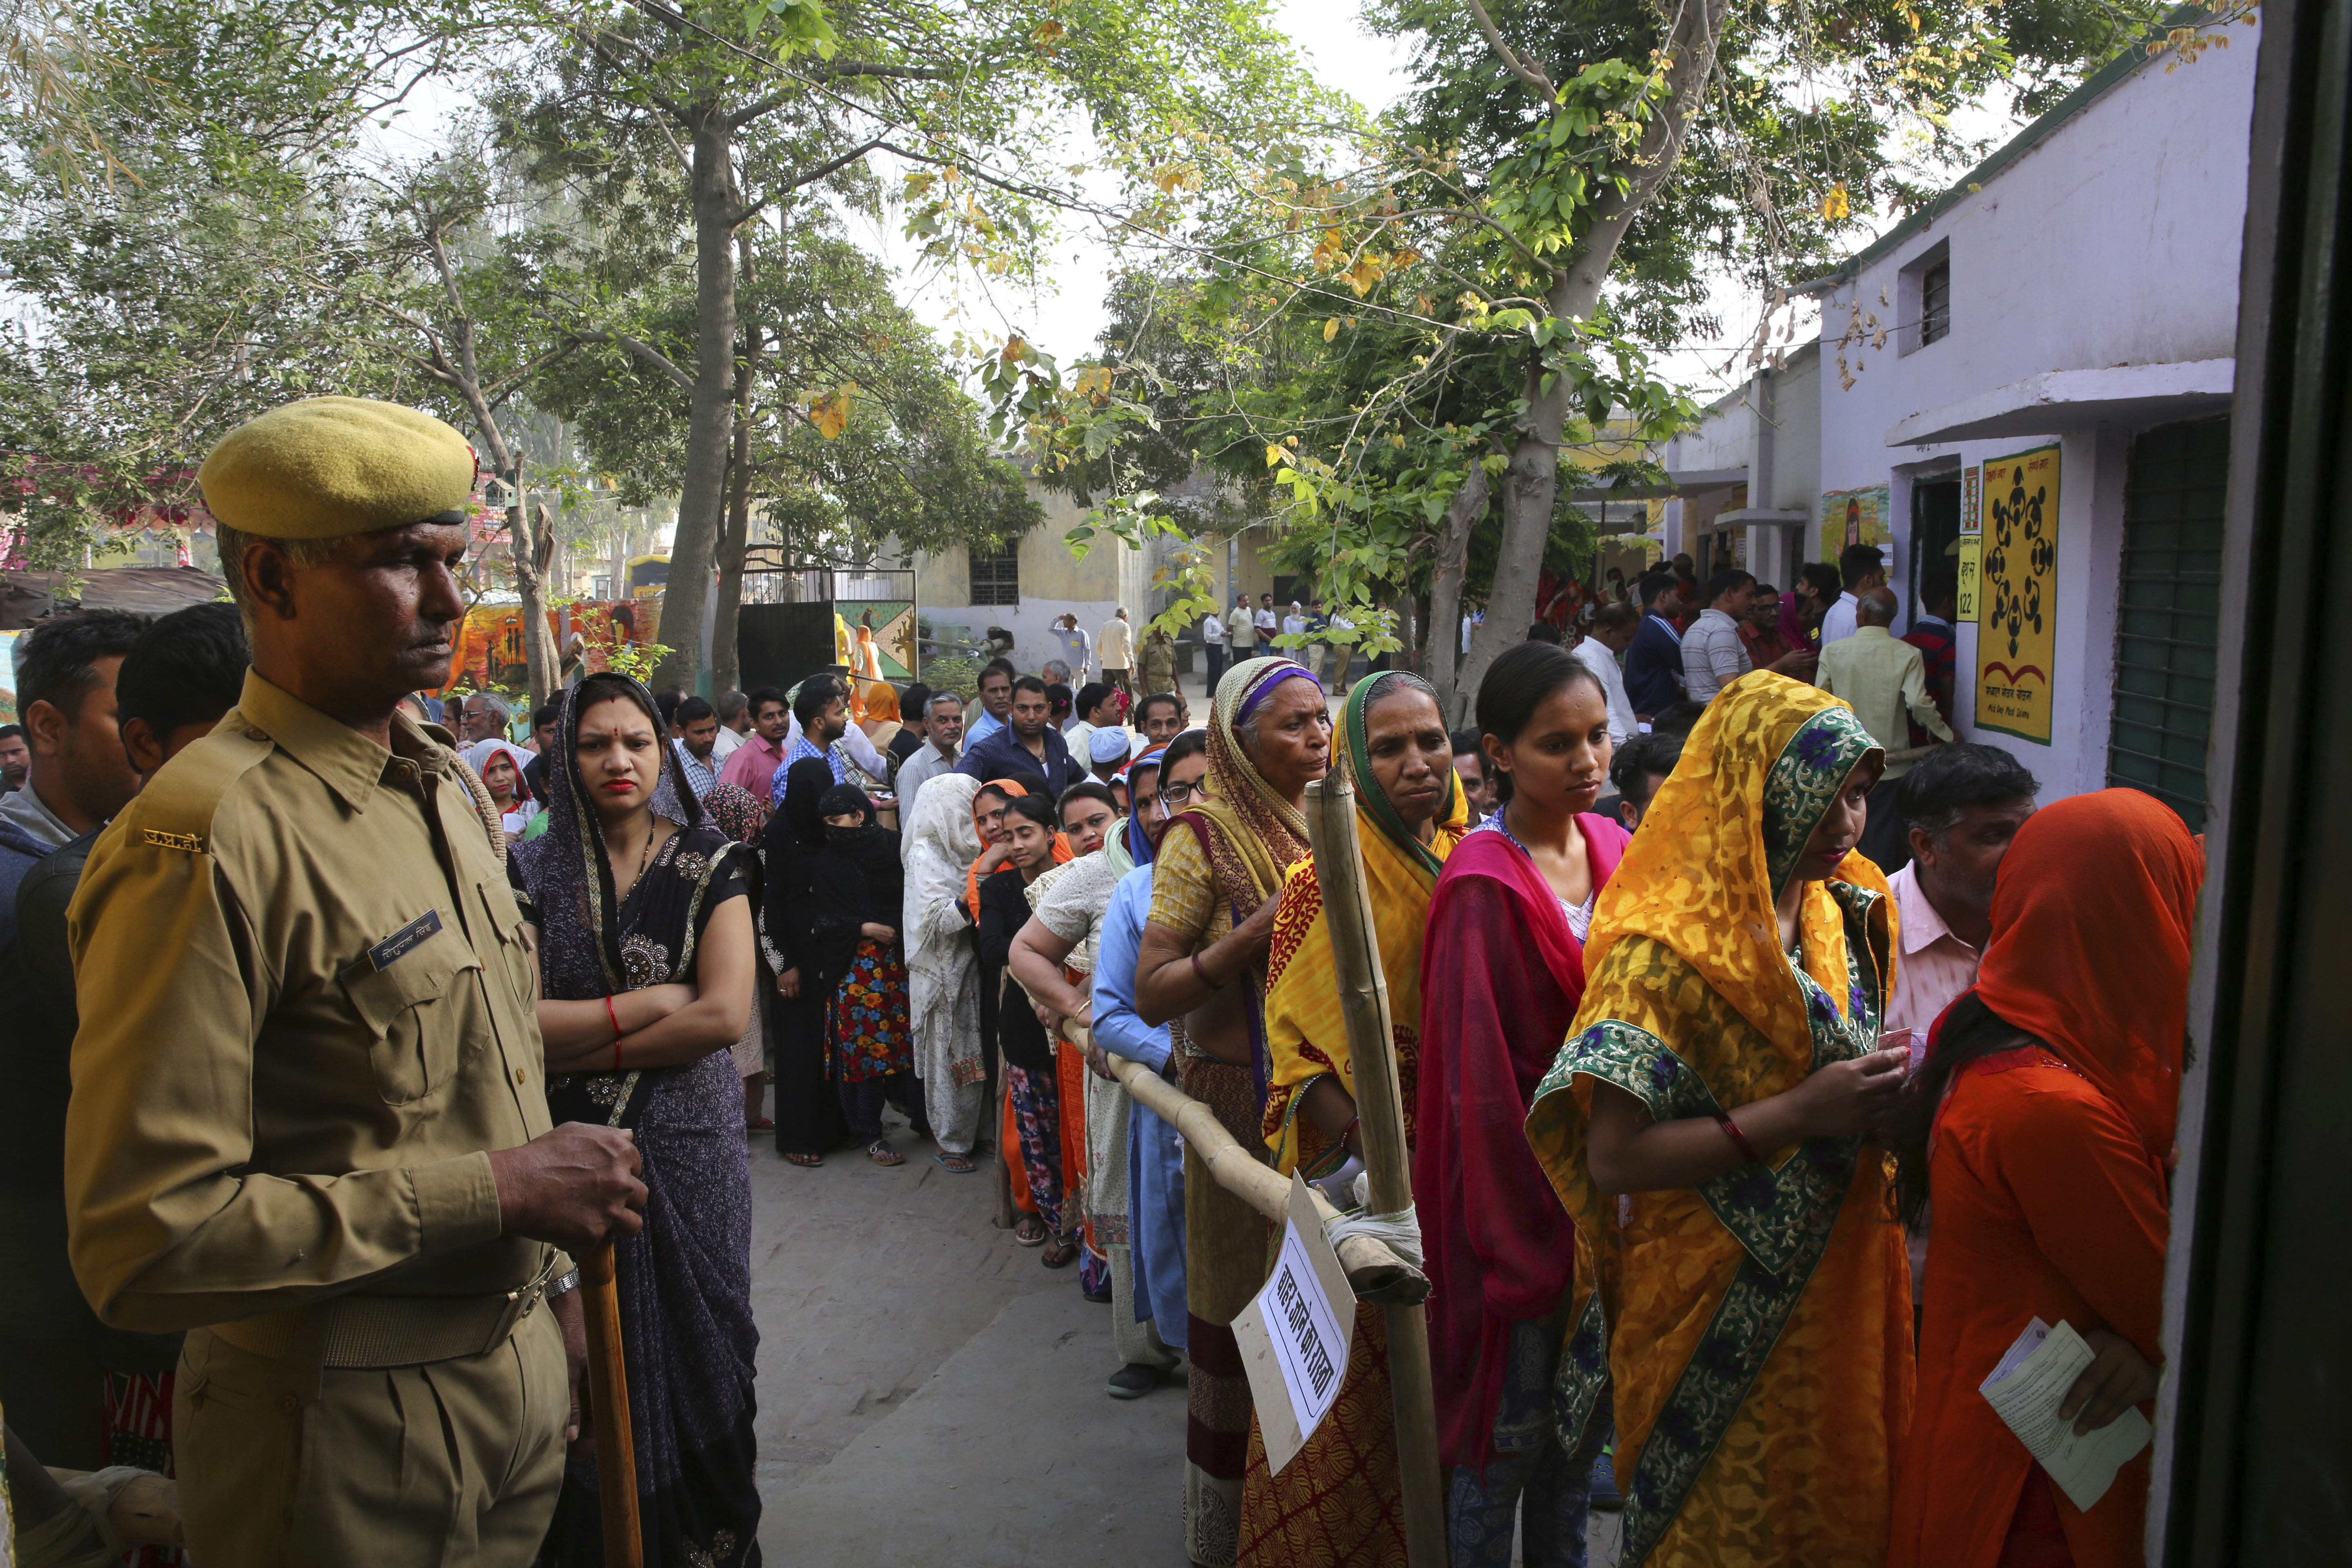 Indians stand in queues to cast their votes at a polling booth for the first phase of general elections, near Ghaziabad, India, April 11, 2019.